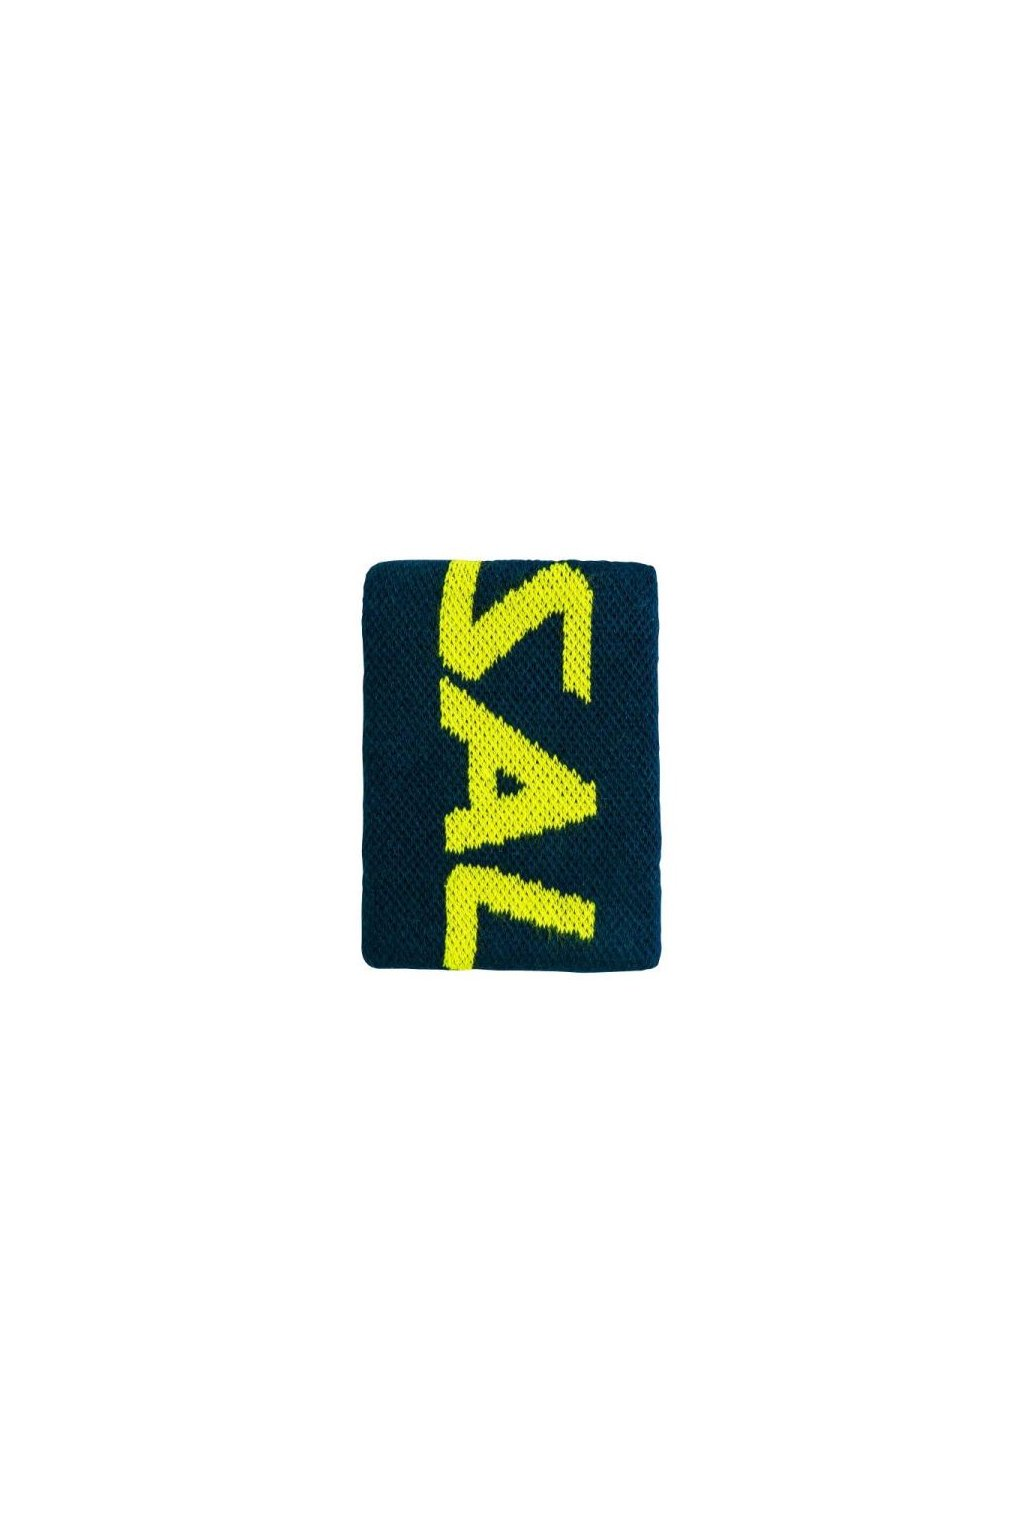 salming wristband mid navy